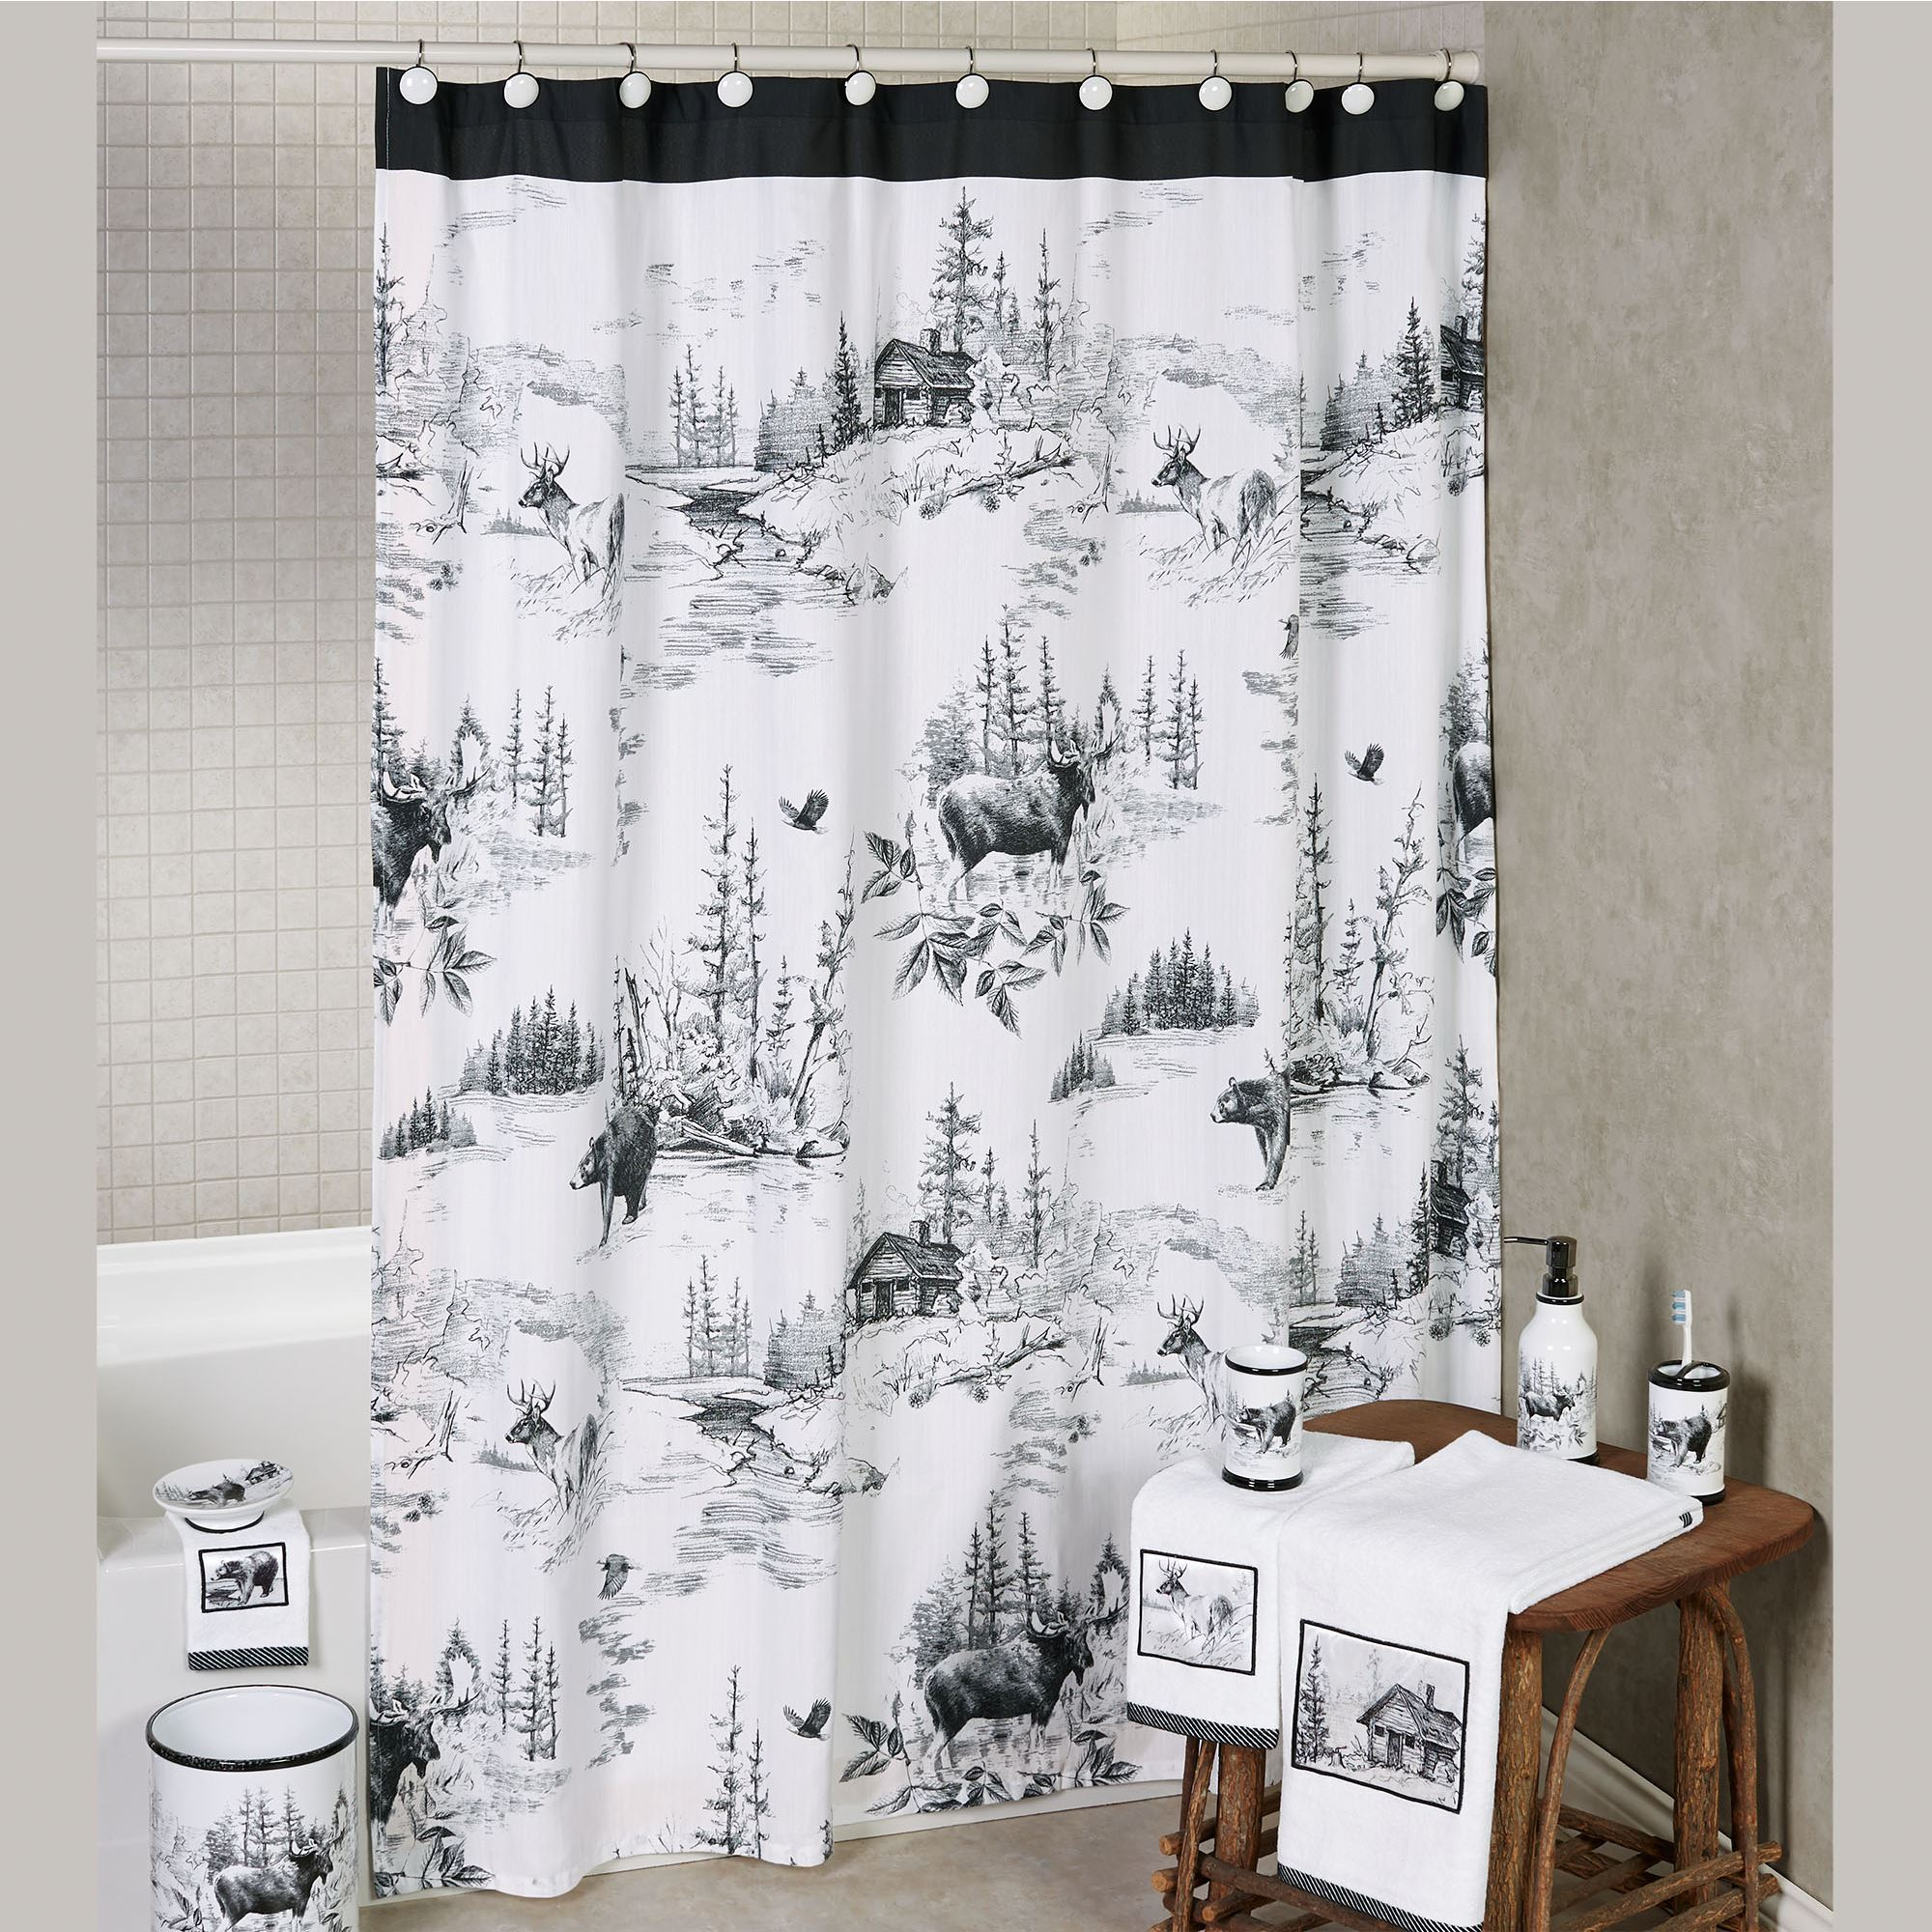 Cheap Rustic Shower Curtains Sketches Rustic Cabin Wildlife Shower Curtain By Hautman Brothers